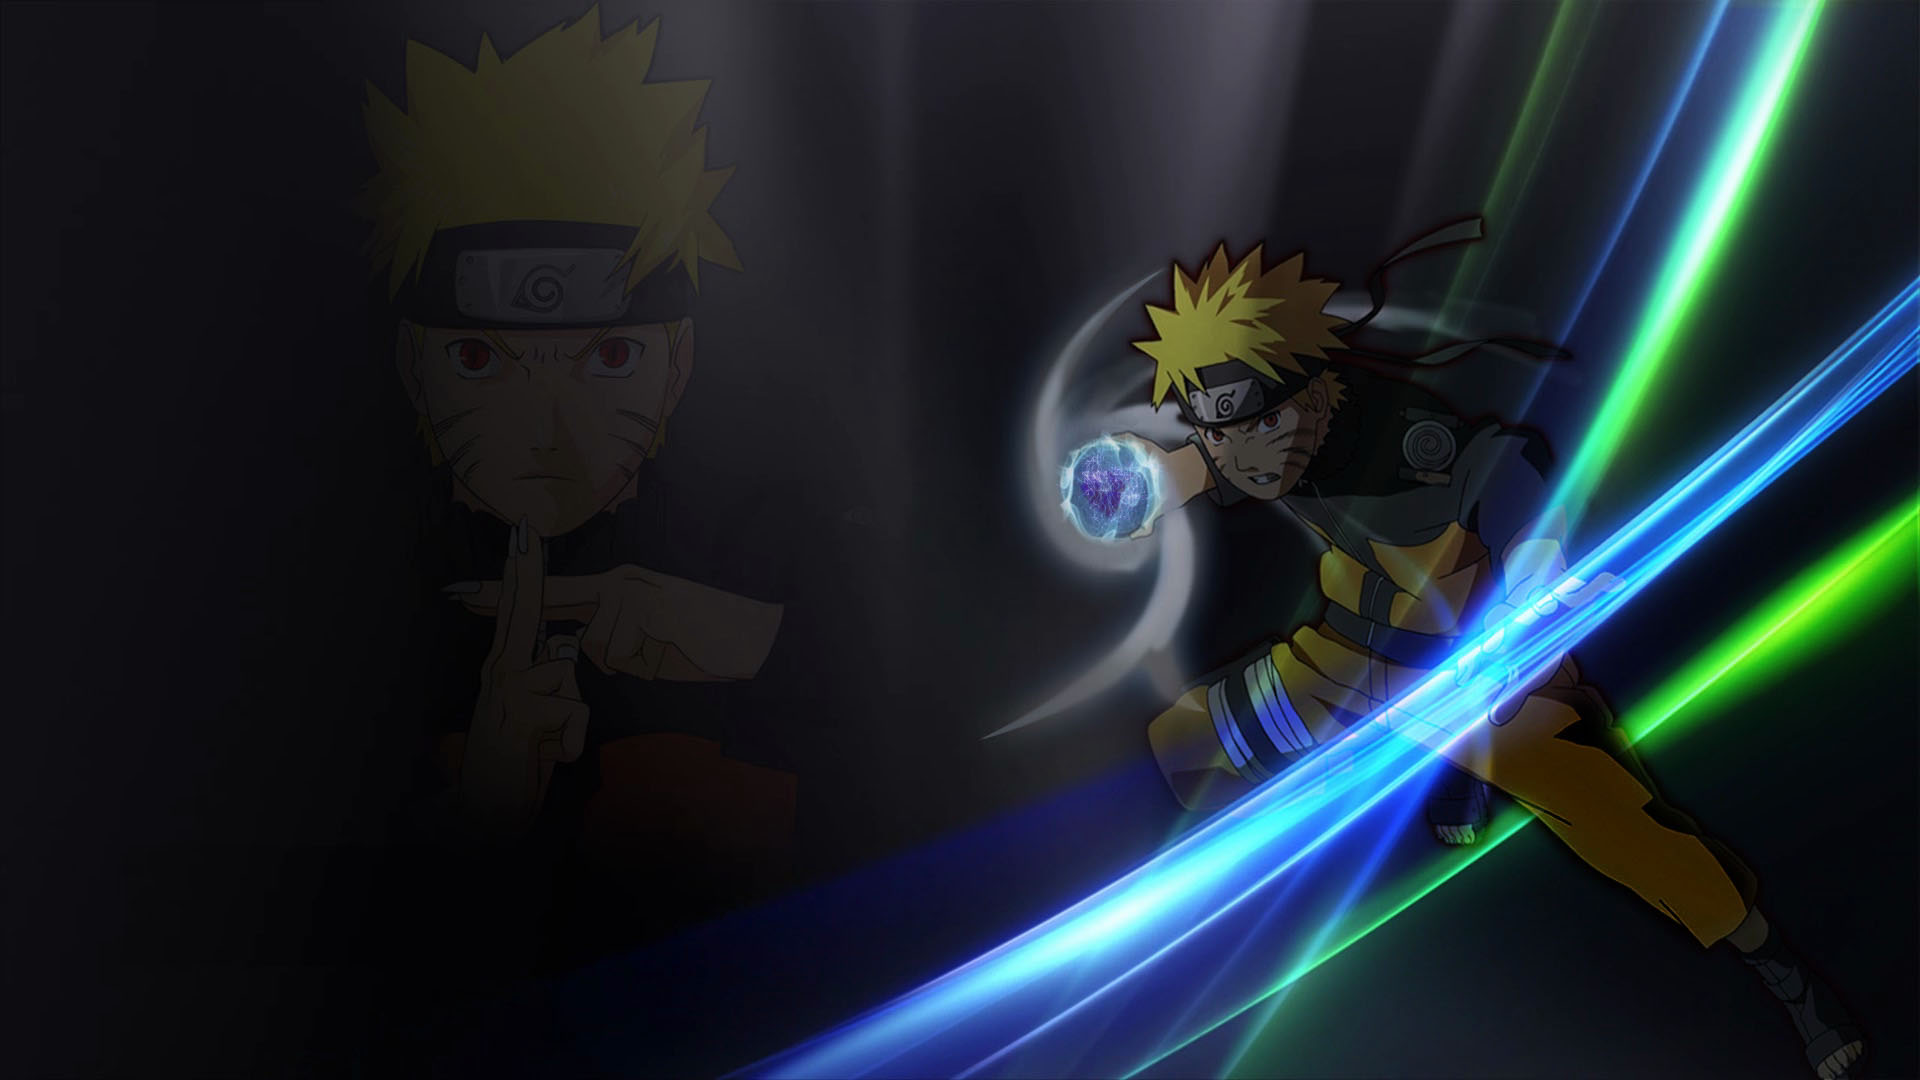 backgrounds gallery naruto wallpapers wallpaper 1920x1080 1920x1080